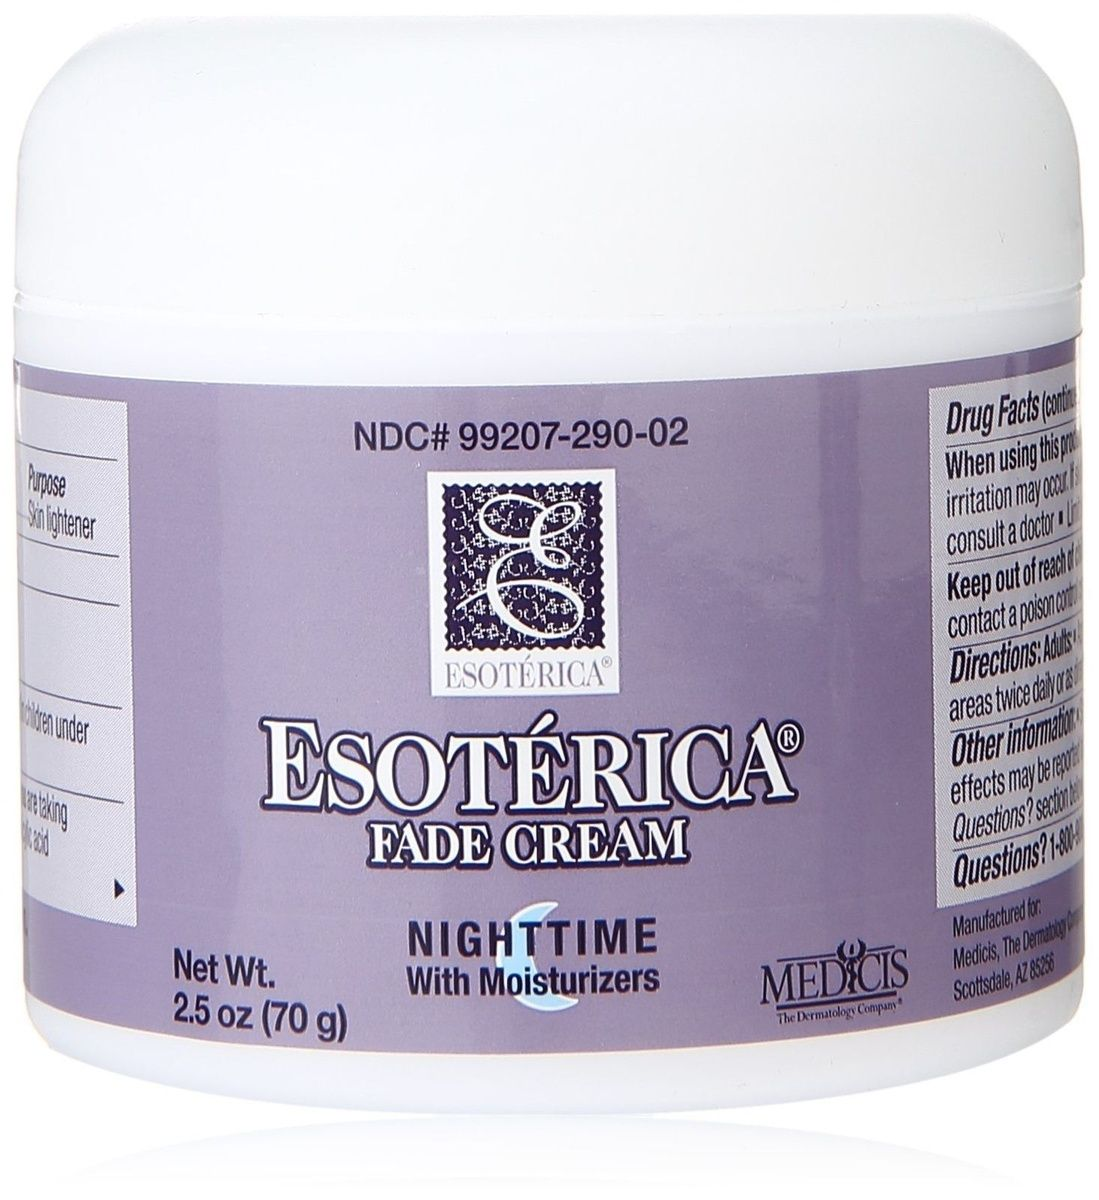 Esoterica Fade Cream Nighttime with Moisturizers http